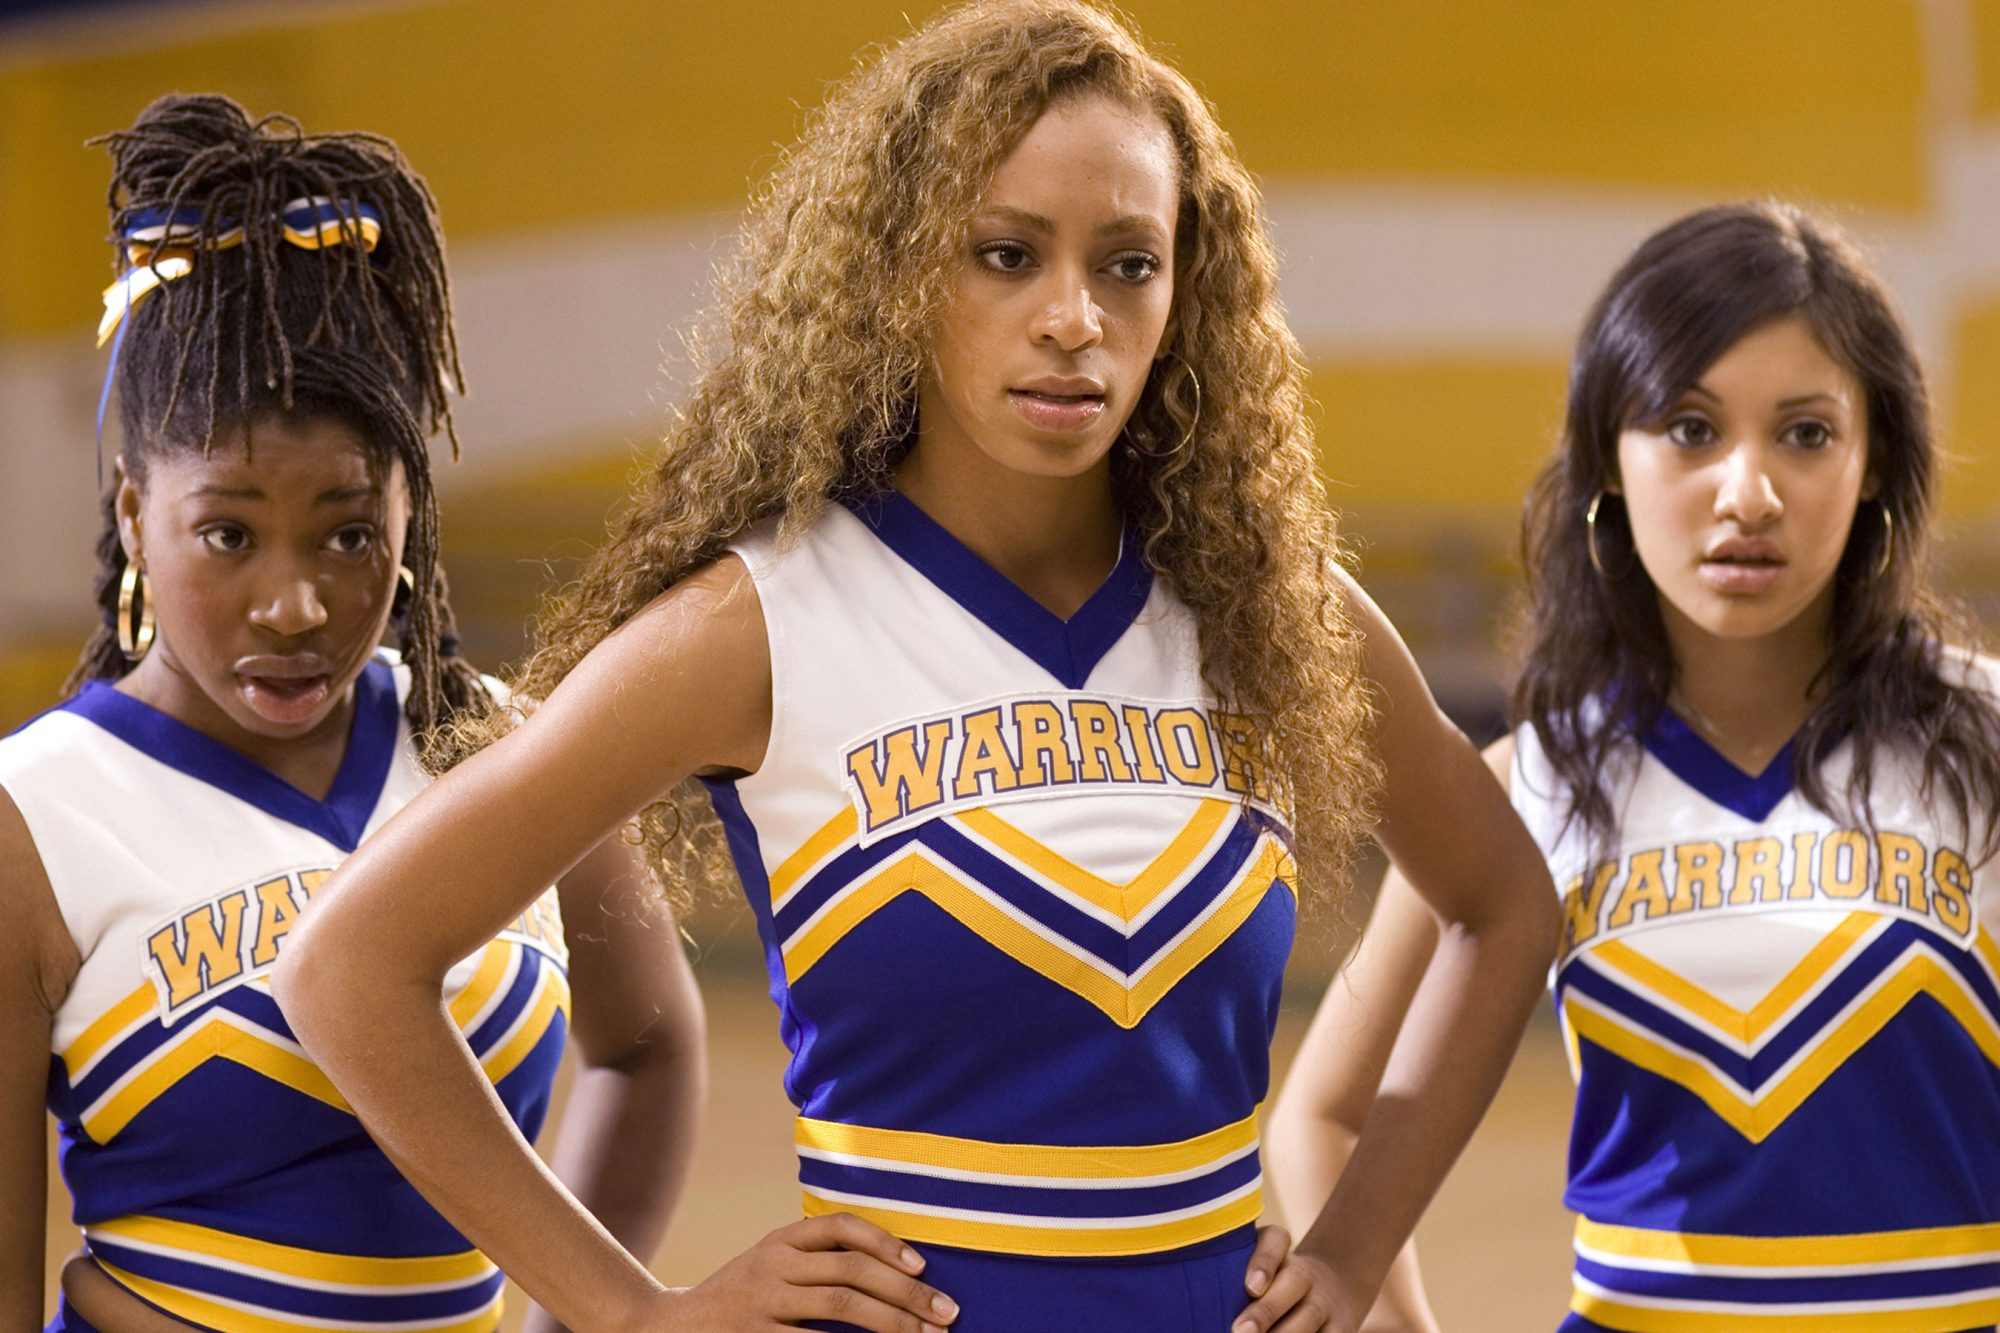 BRING IT ON: ALL OR NOTHING, Giovonnie Samuels, Solange Knowles, Francia Almendarez, 2006. © Univers